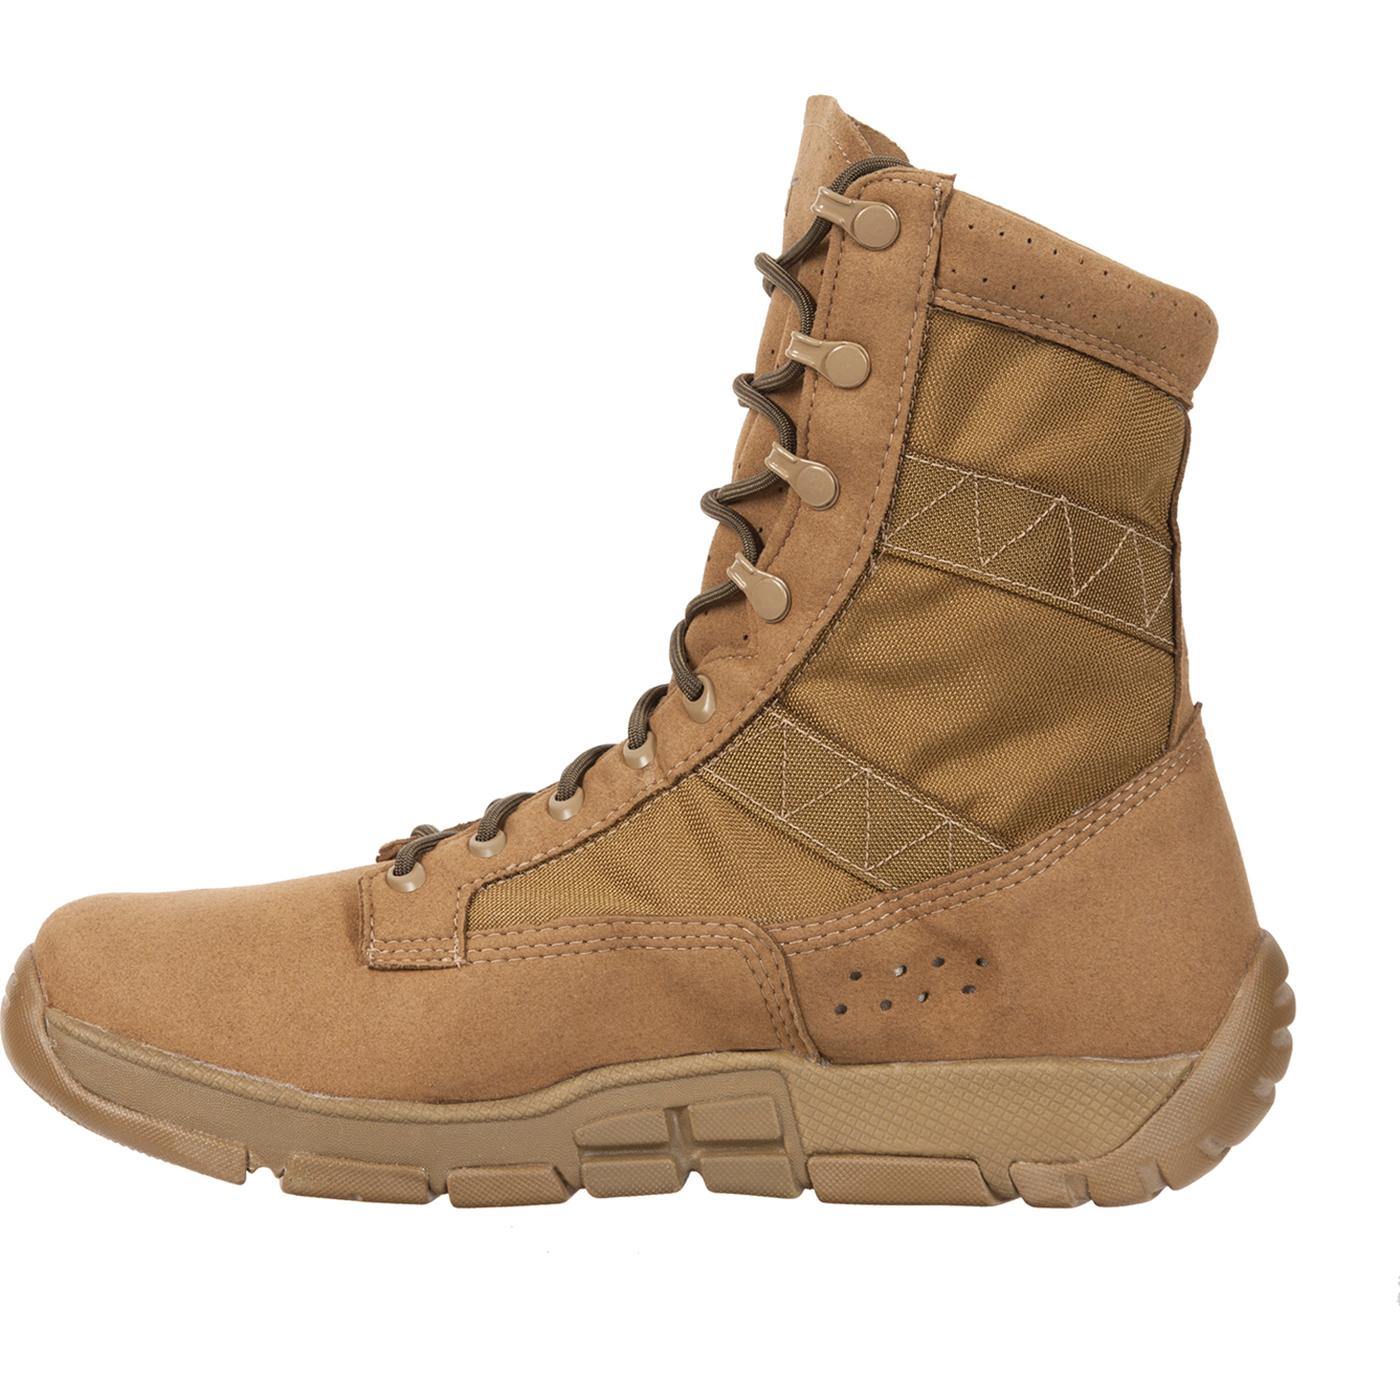 Find great deals on eBay for rocky boots. Shop with confidence.